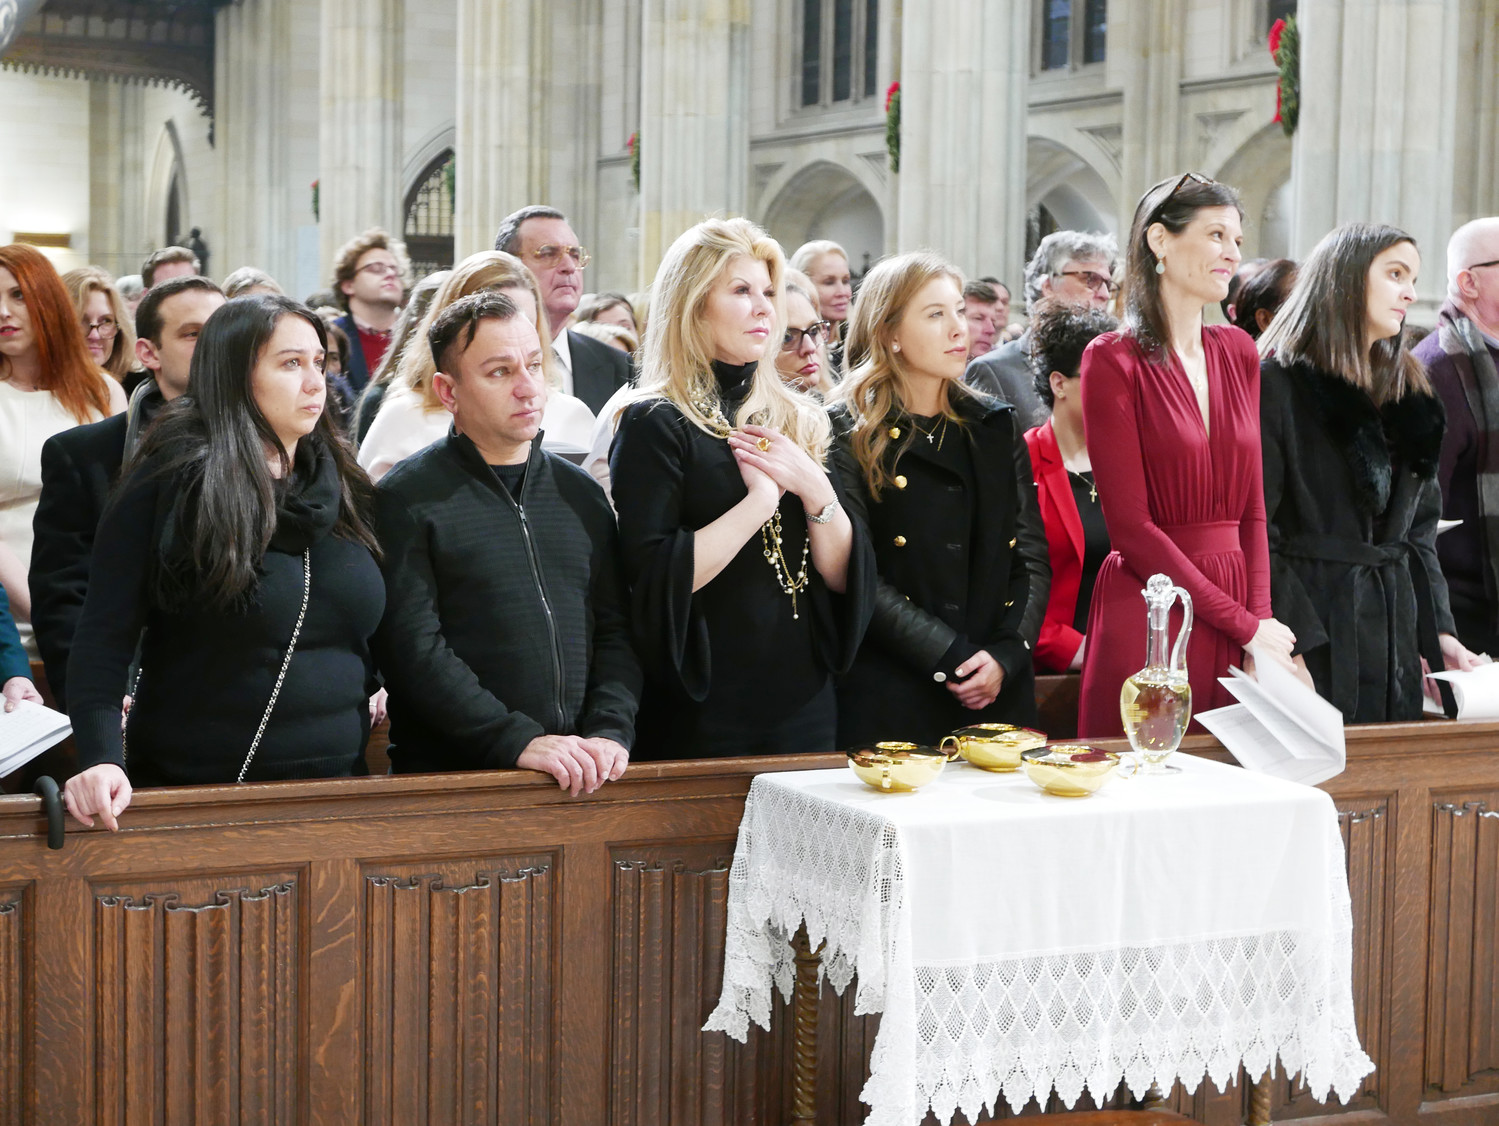 Members of the congregation listen prayerfully to words from the altar. In front of the congregation, the offertory gifts are carefully arranged on a table.